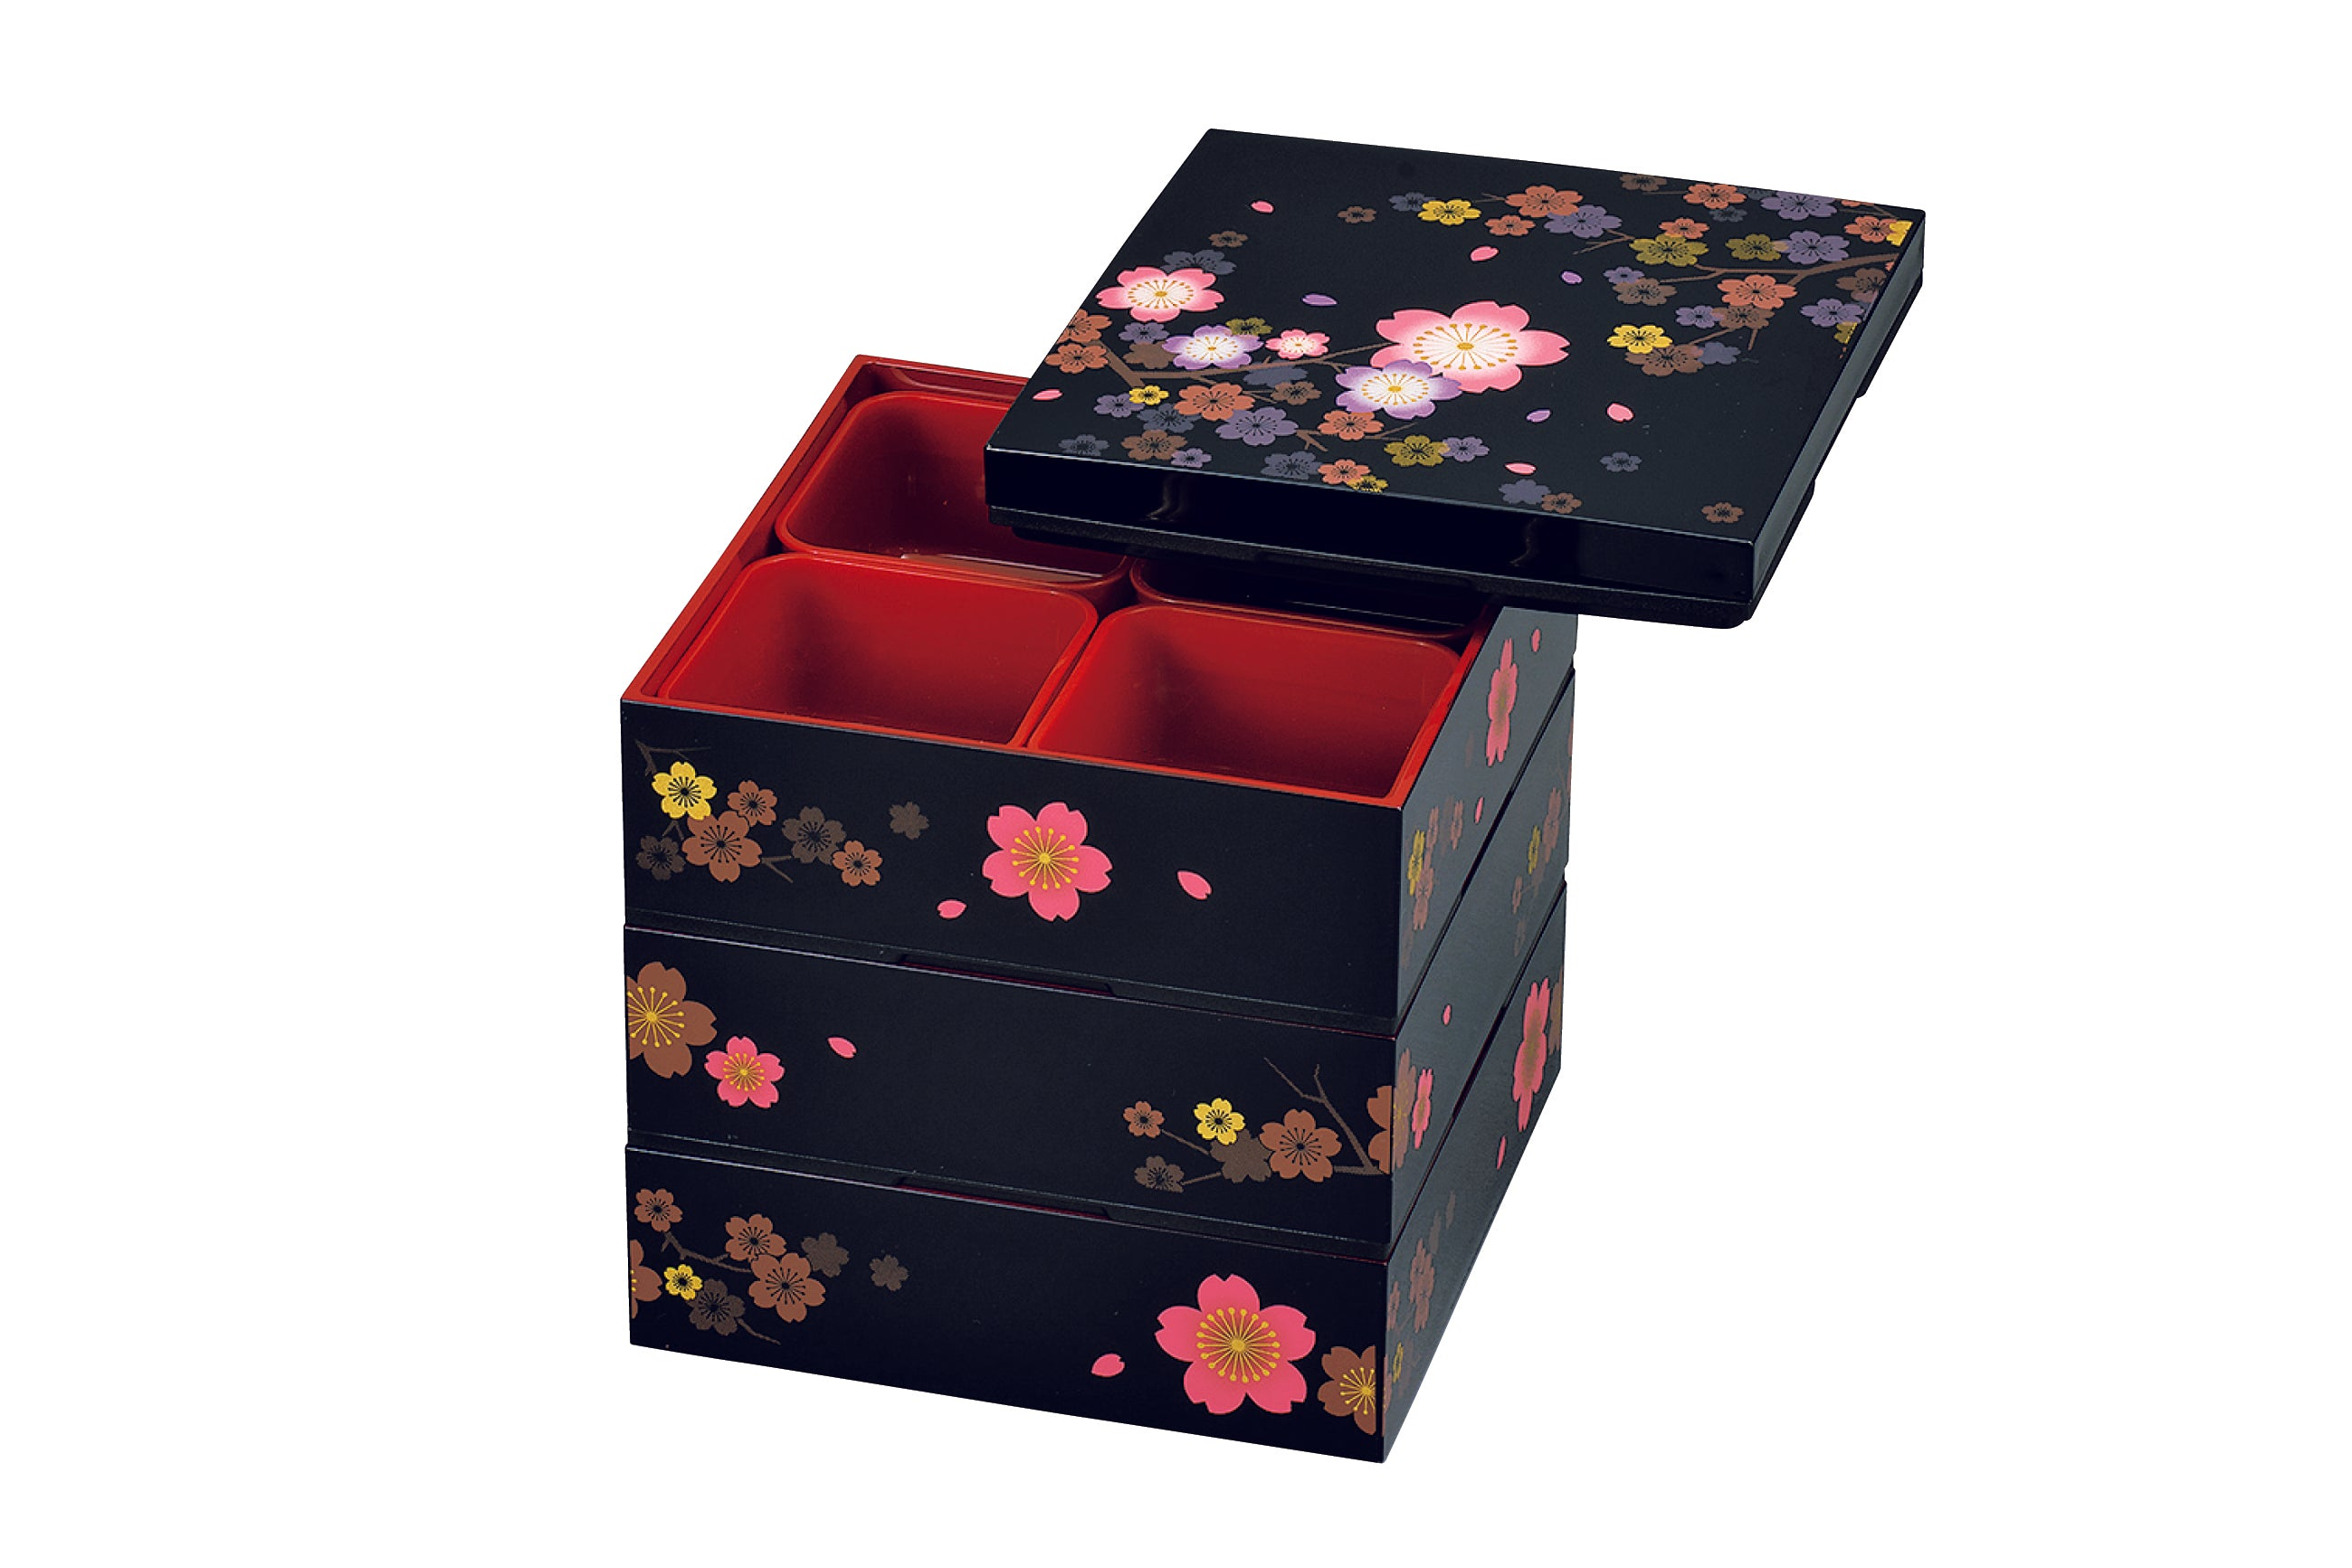 Colorful Sakura Three Tier Picnic Bento Box | Large by Hakoya - Bento&co Japanese Bento Lunch Boxes and Kitchenware Specialists